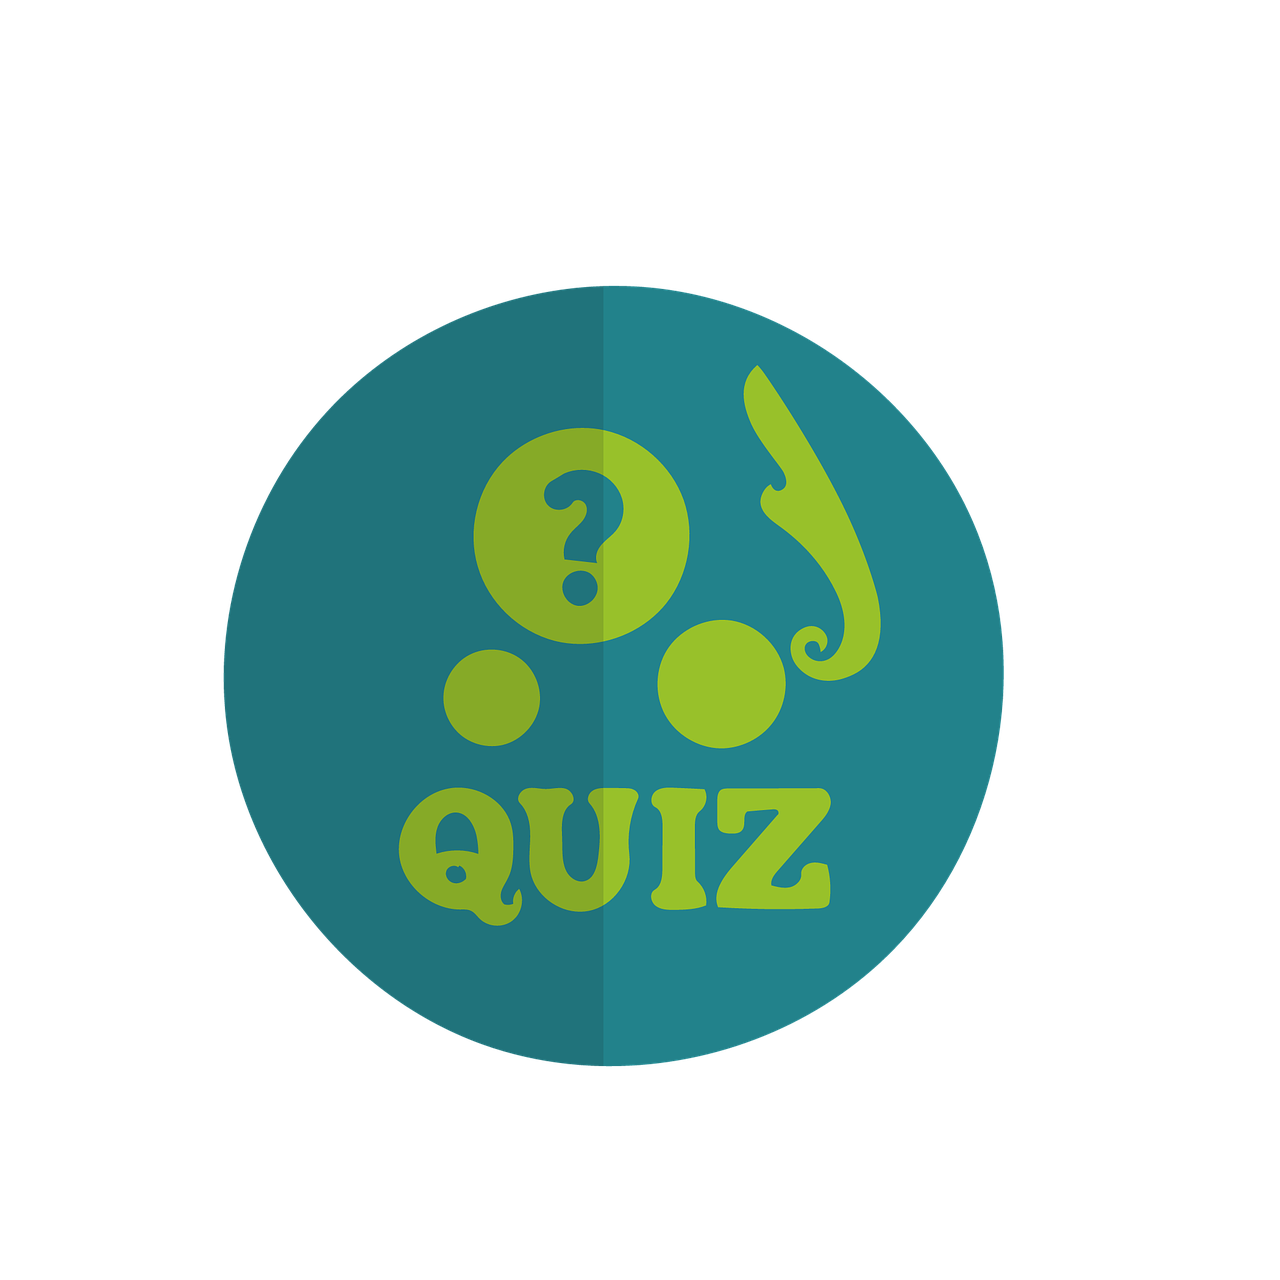 Icon,question,quiz,clipart,free pictures - free image from needpix.com